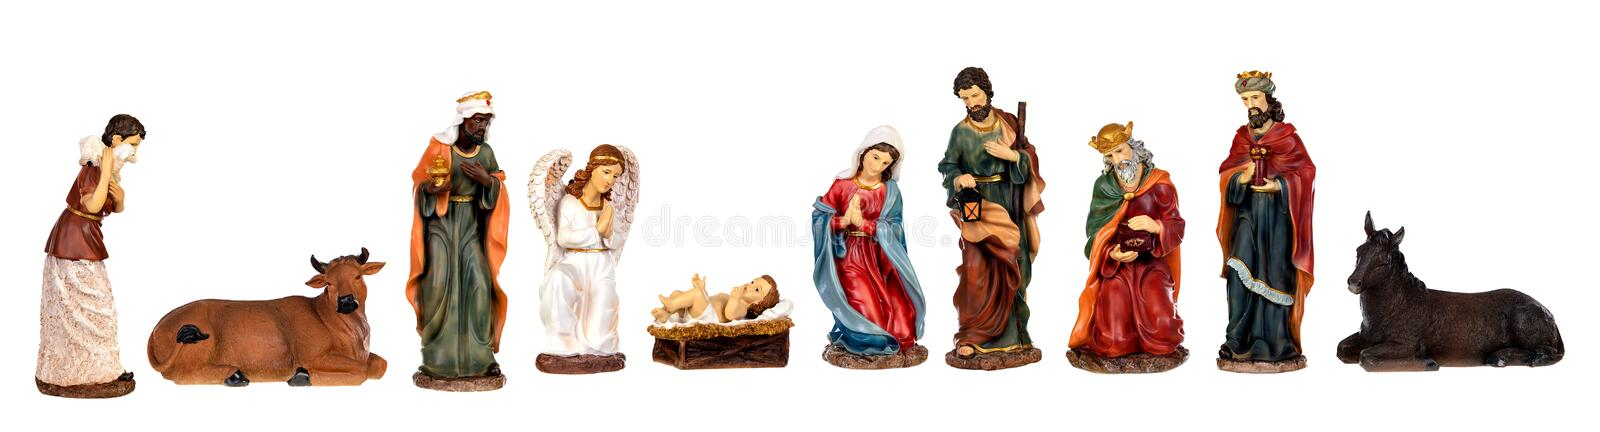 Image figures for the Nativity Portal stock photo